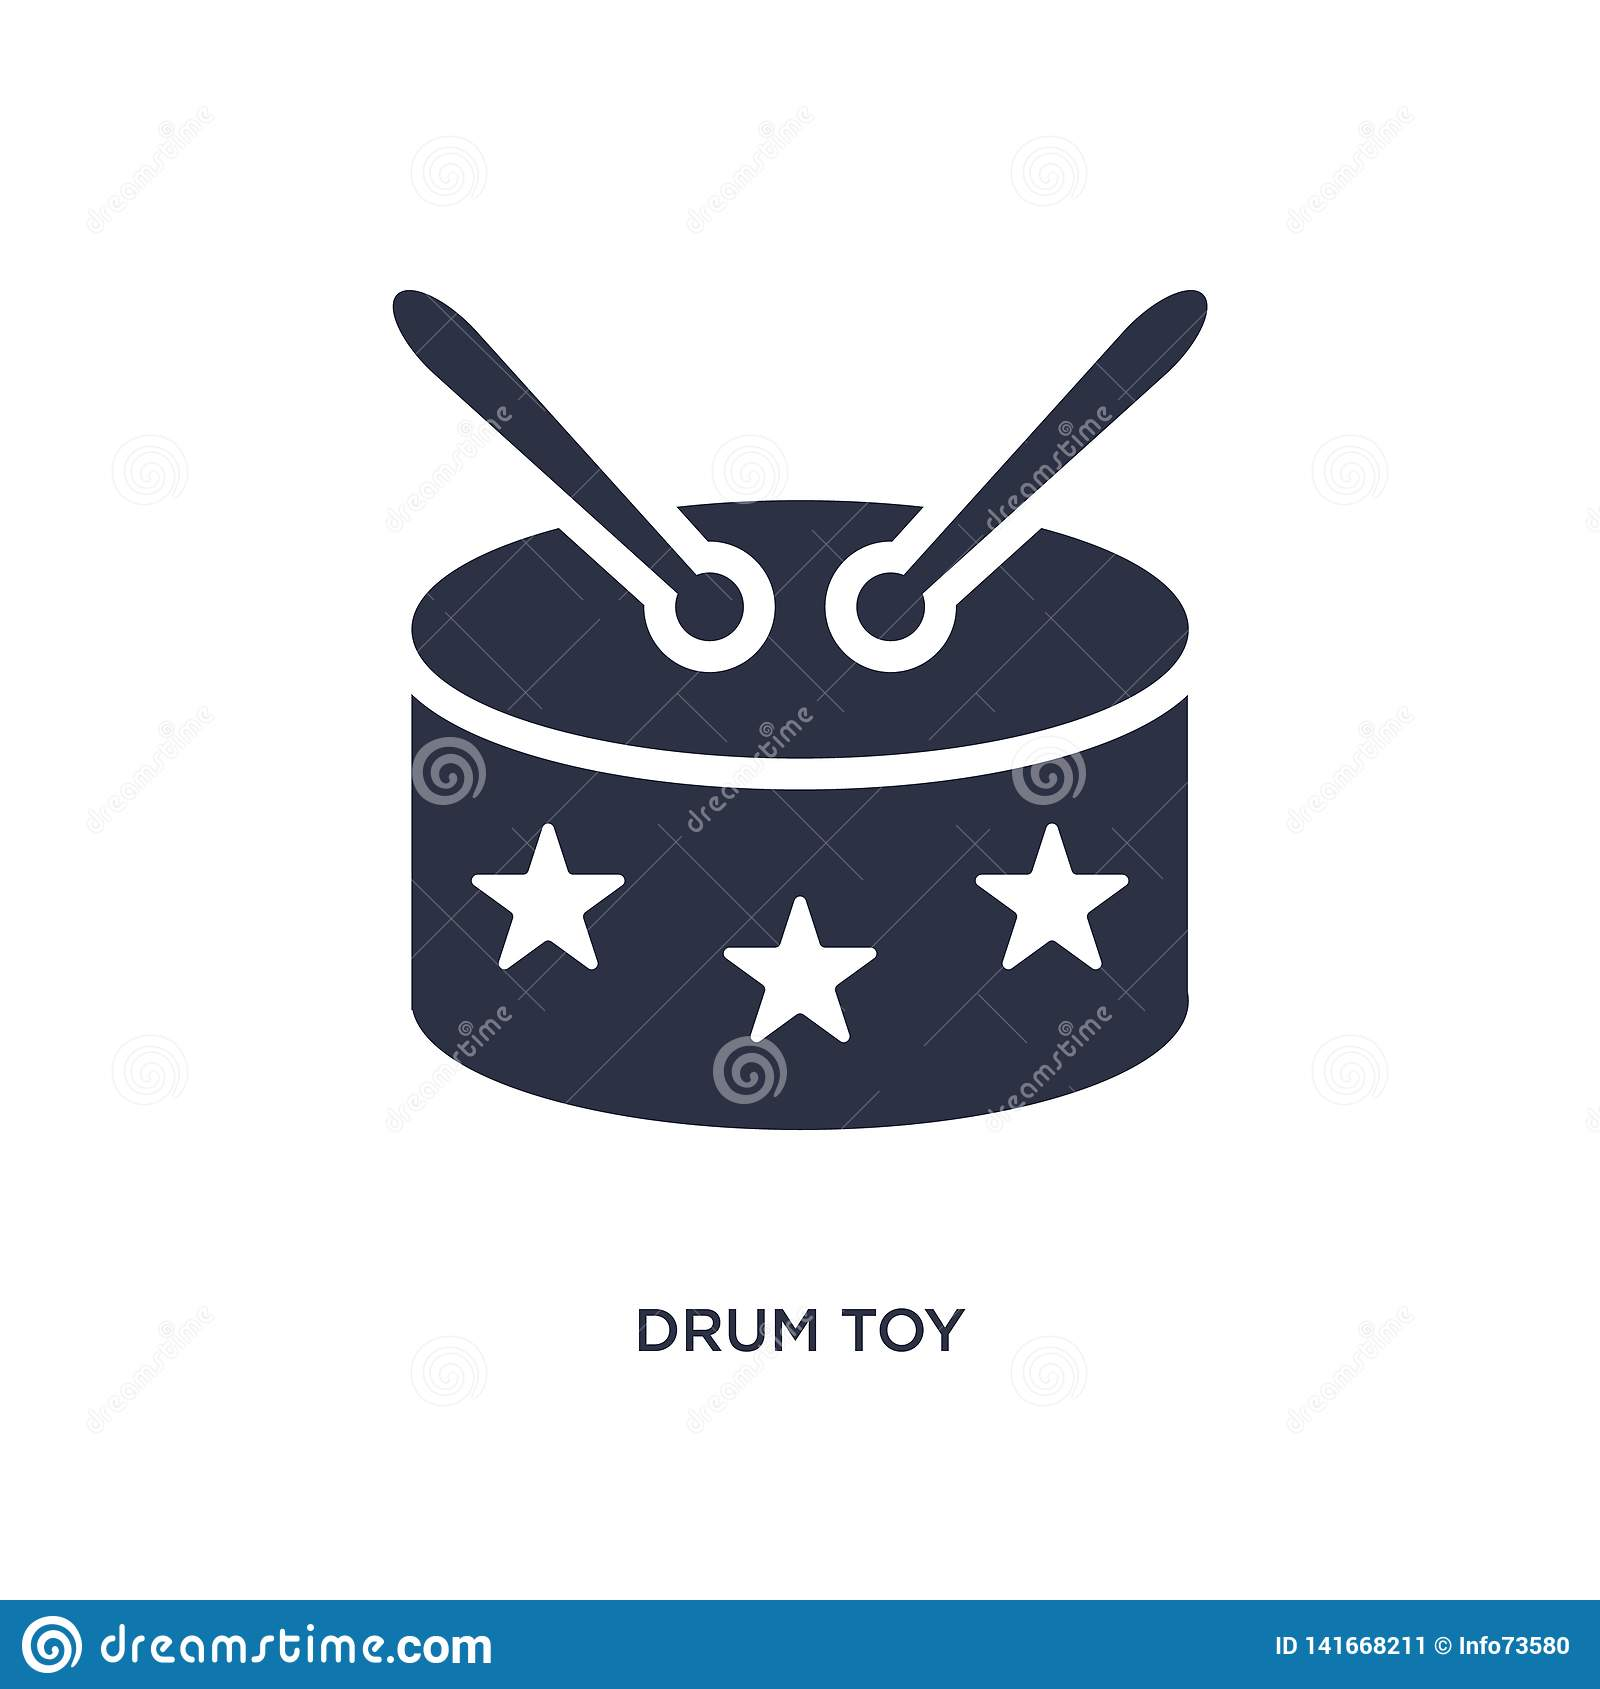 drum toy icon on white background. Simple element illustration from toys concept